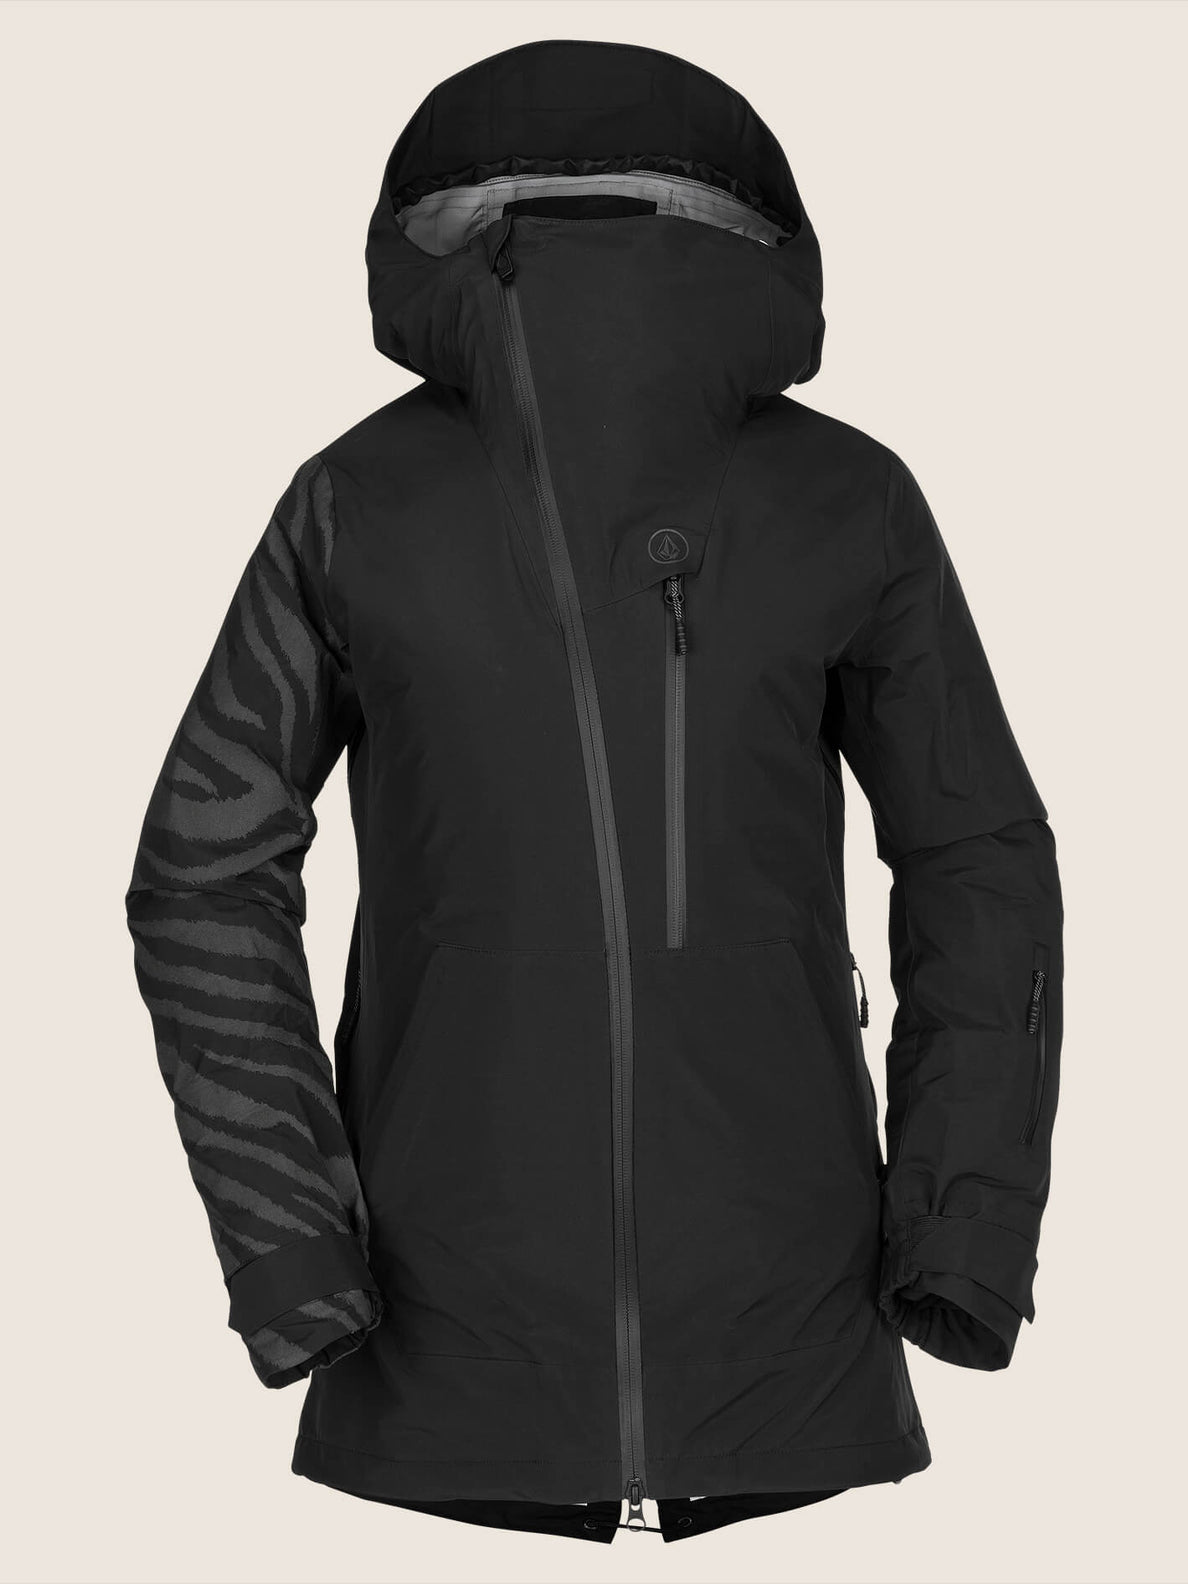 Nya Tds® Gore-tex Jacket In Black, Front View